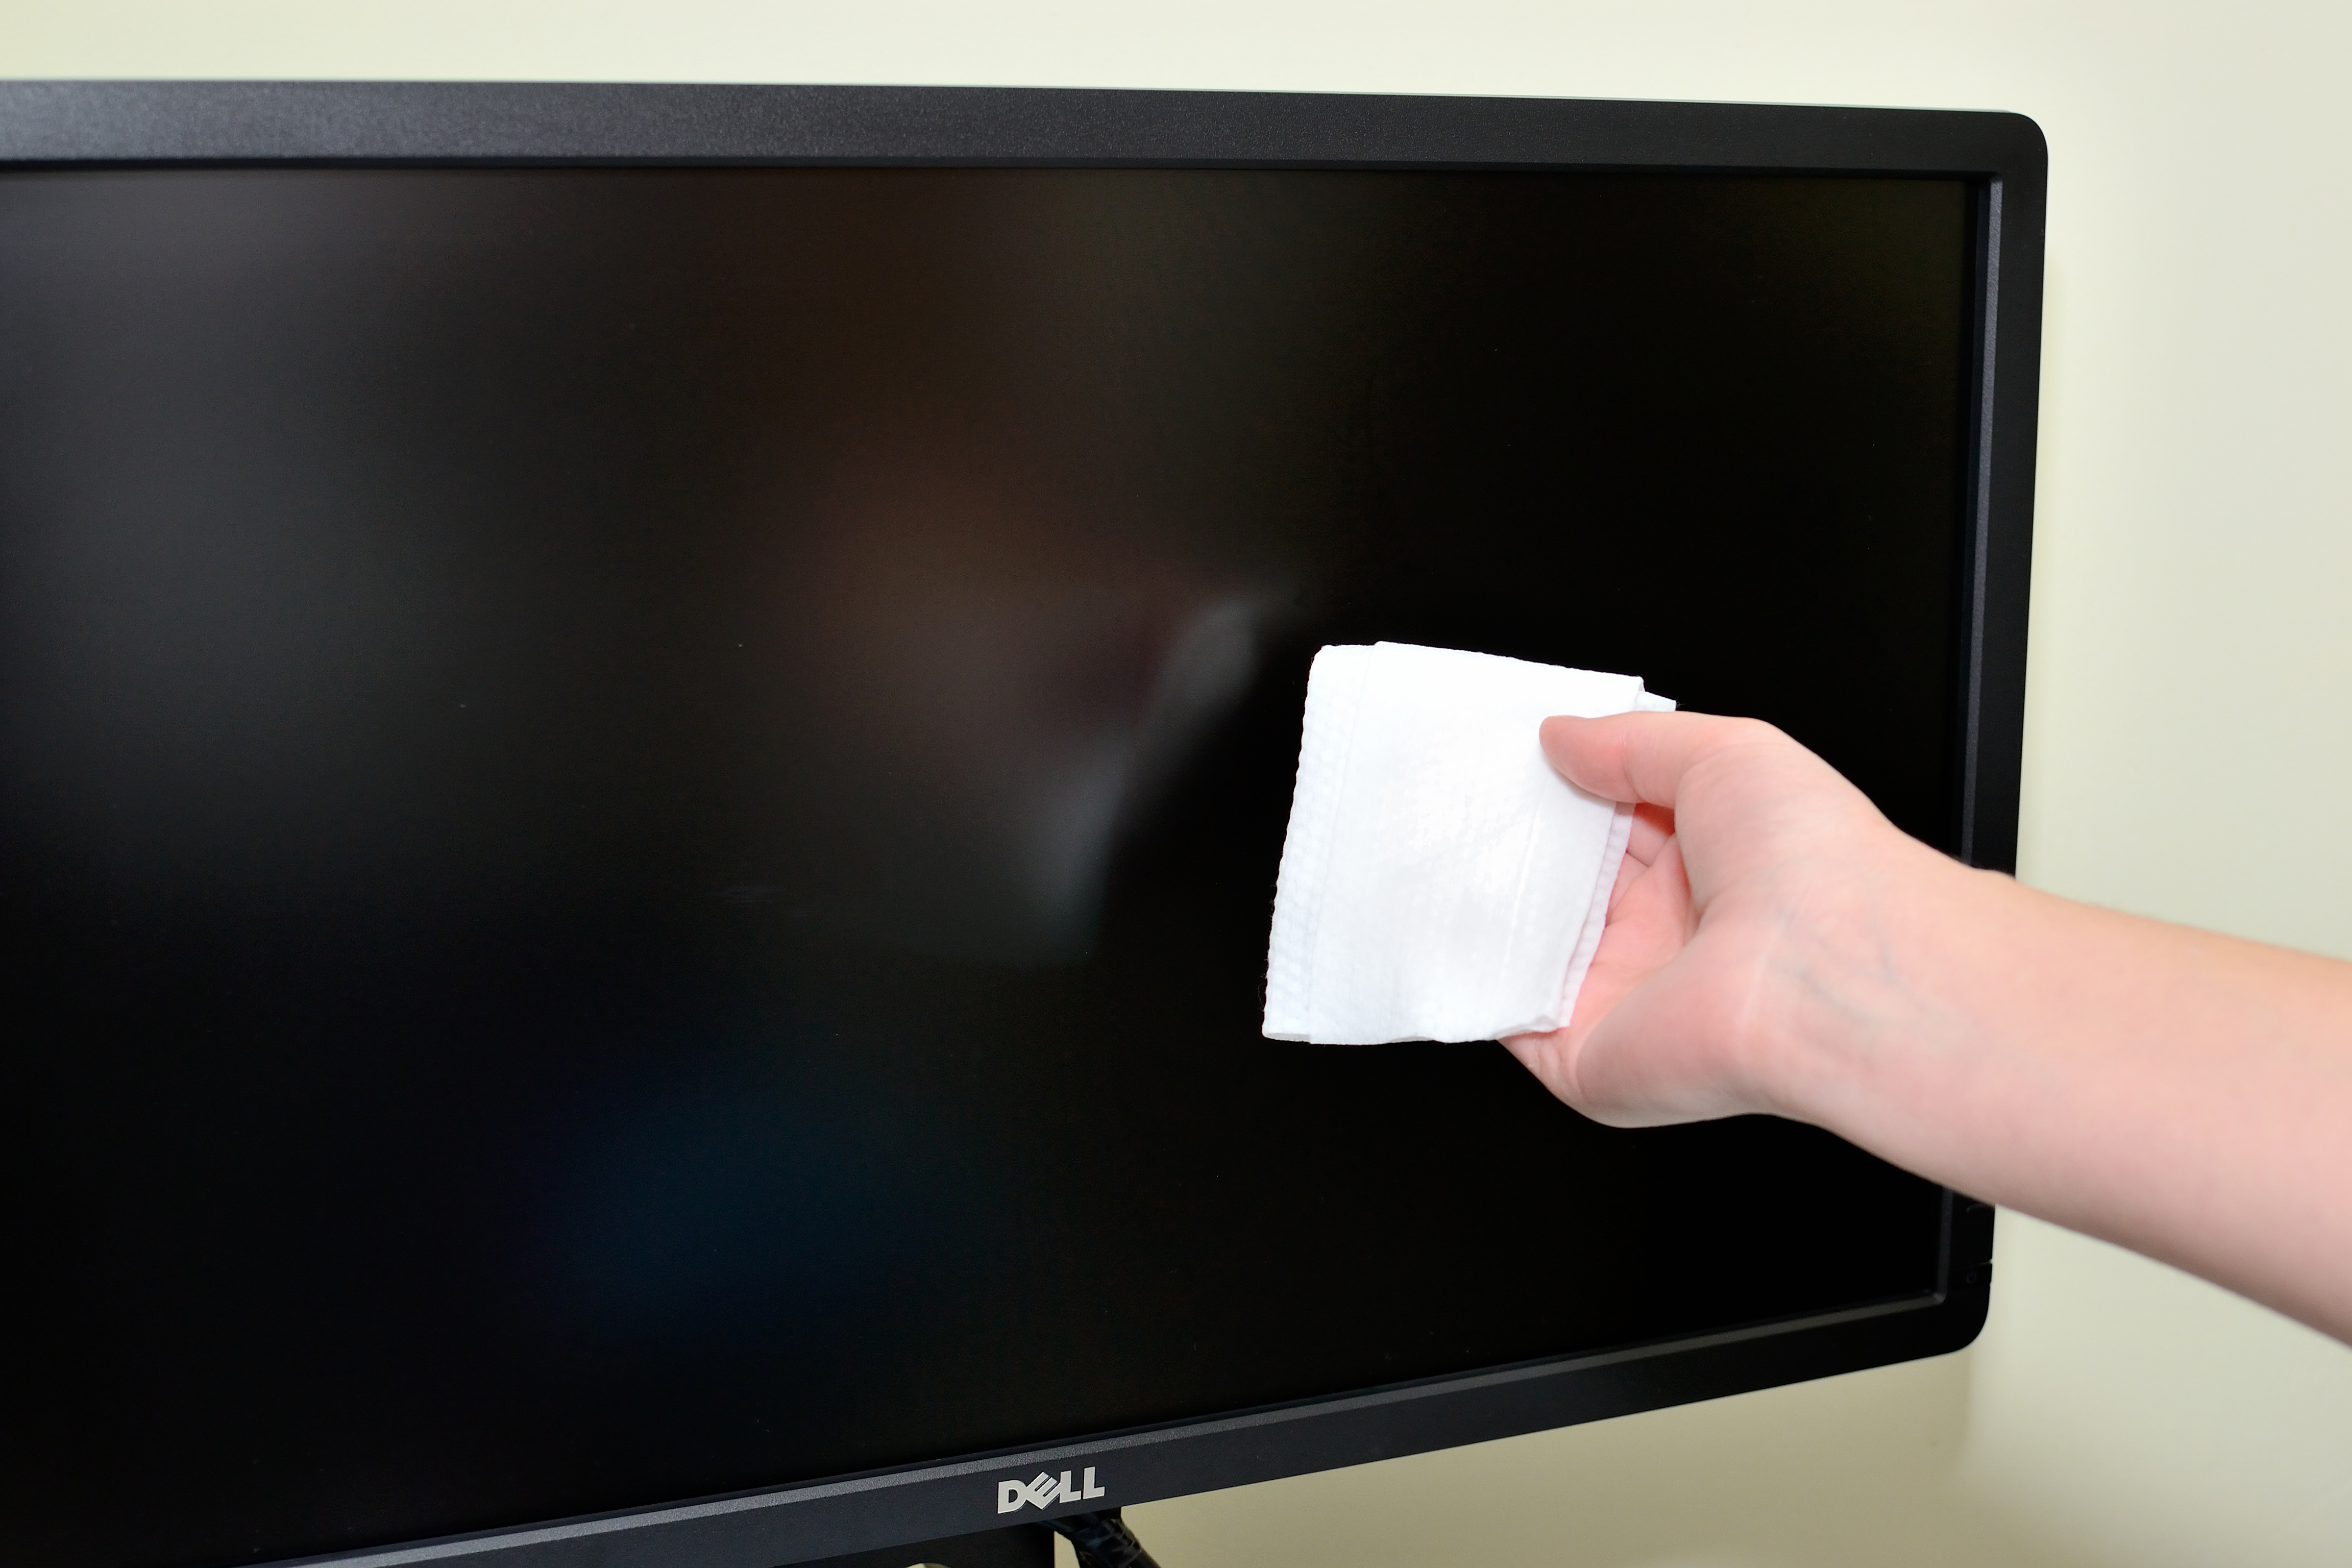 The Best Ways to Clean a Computer MonitorLCD Screen  wikiHow